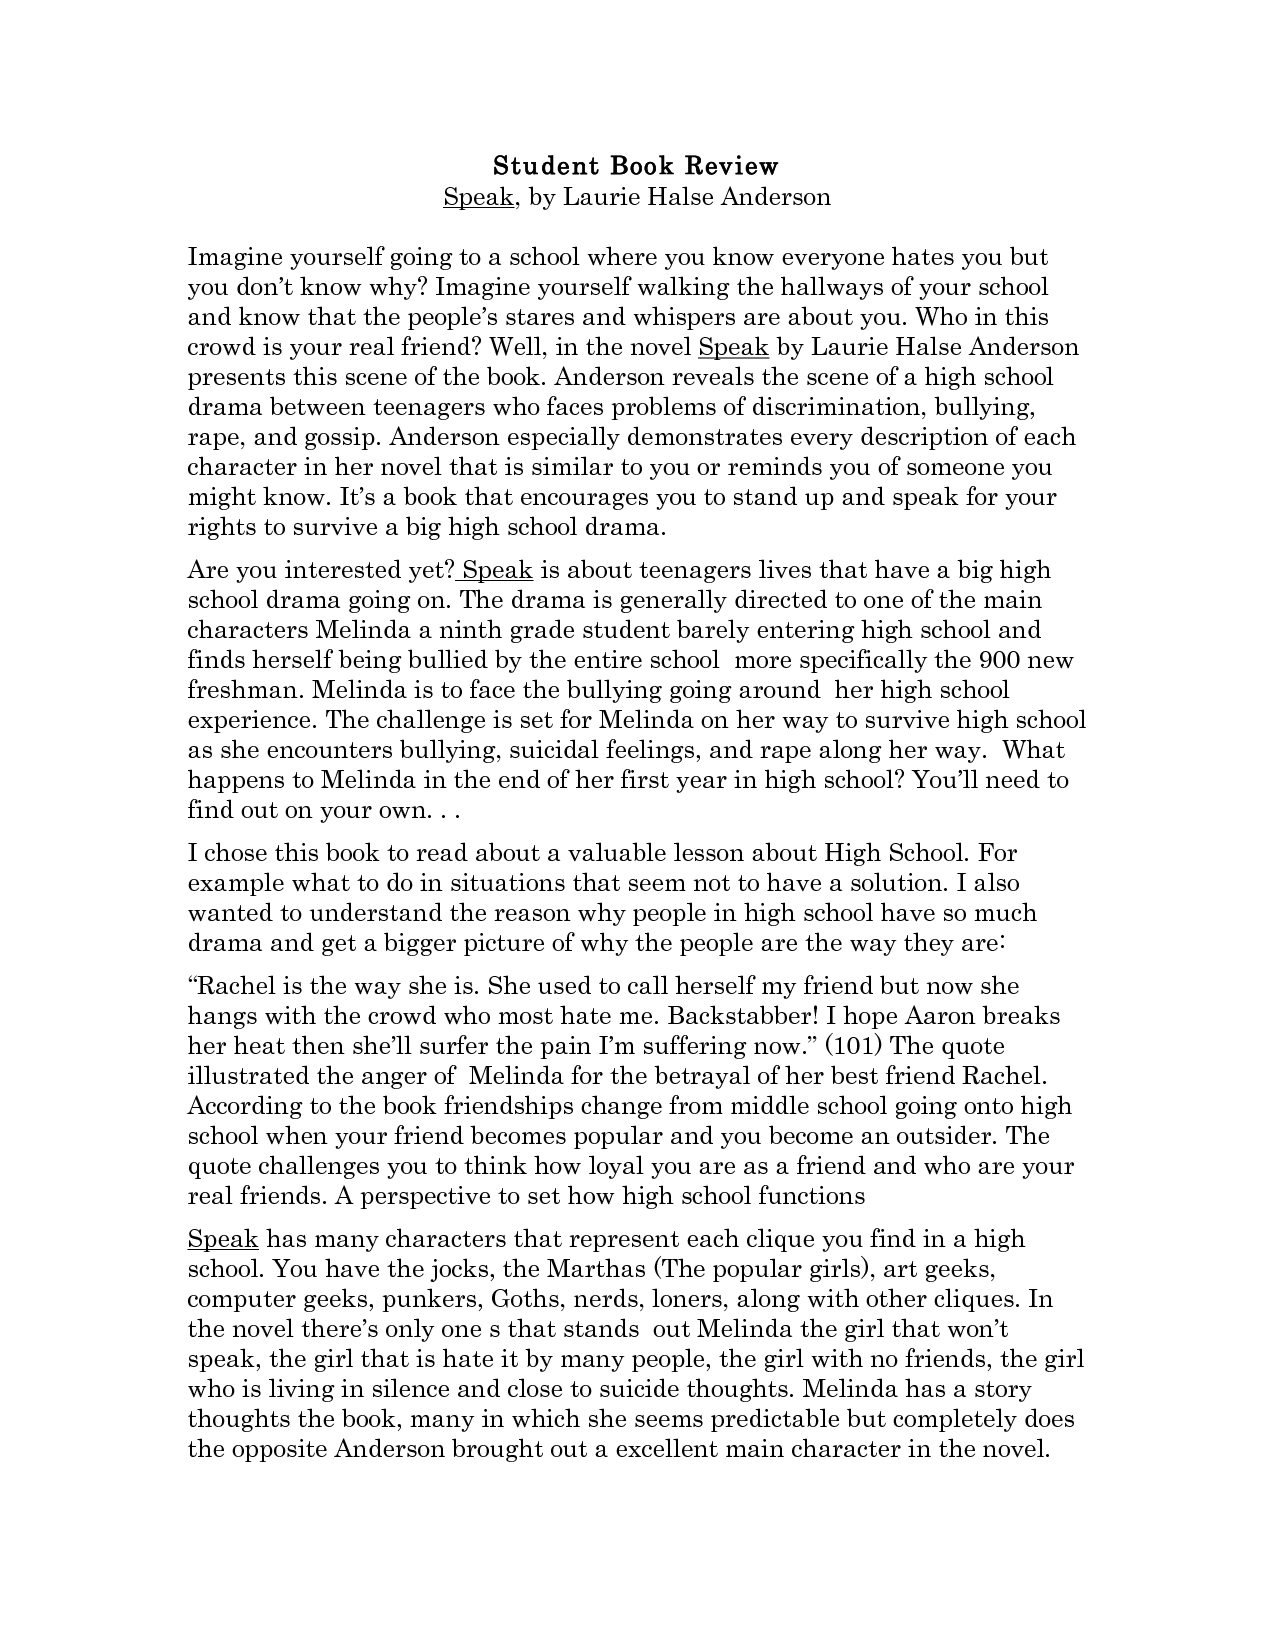 melinda speak characterization essay Characterization theme melinda's view on life does not change and at the end of the story she finally made her decision to speak up about what.